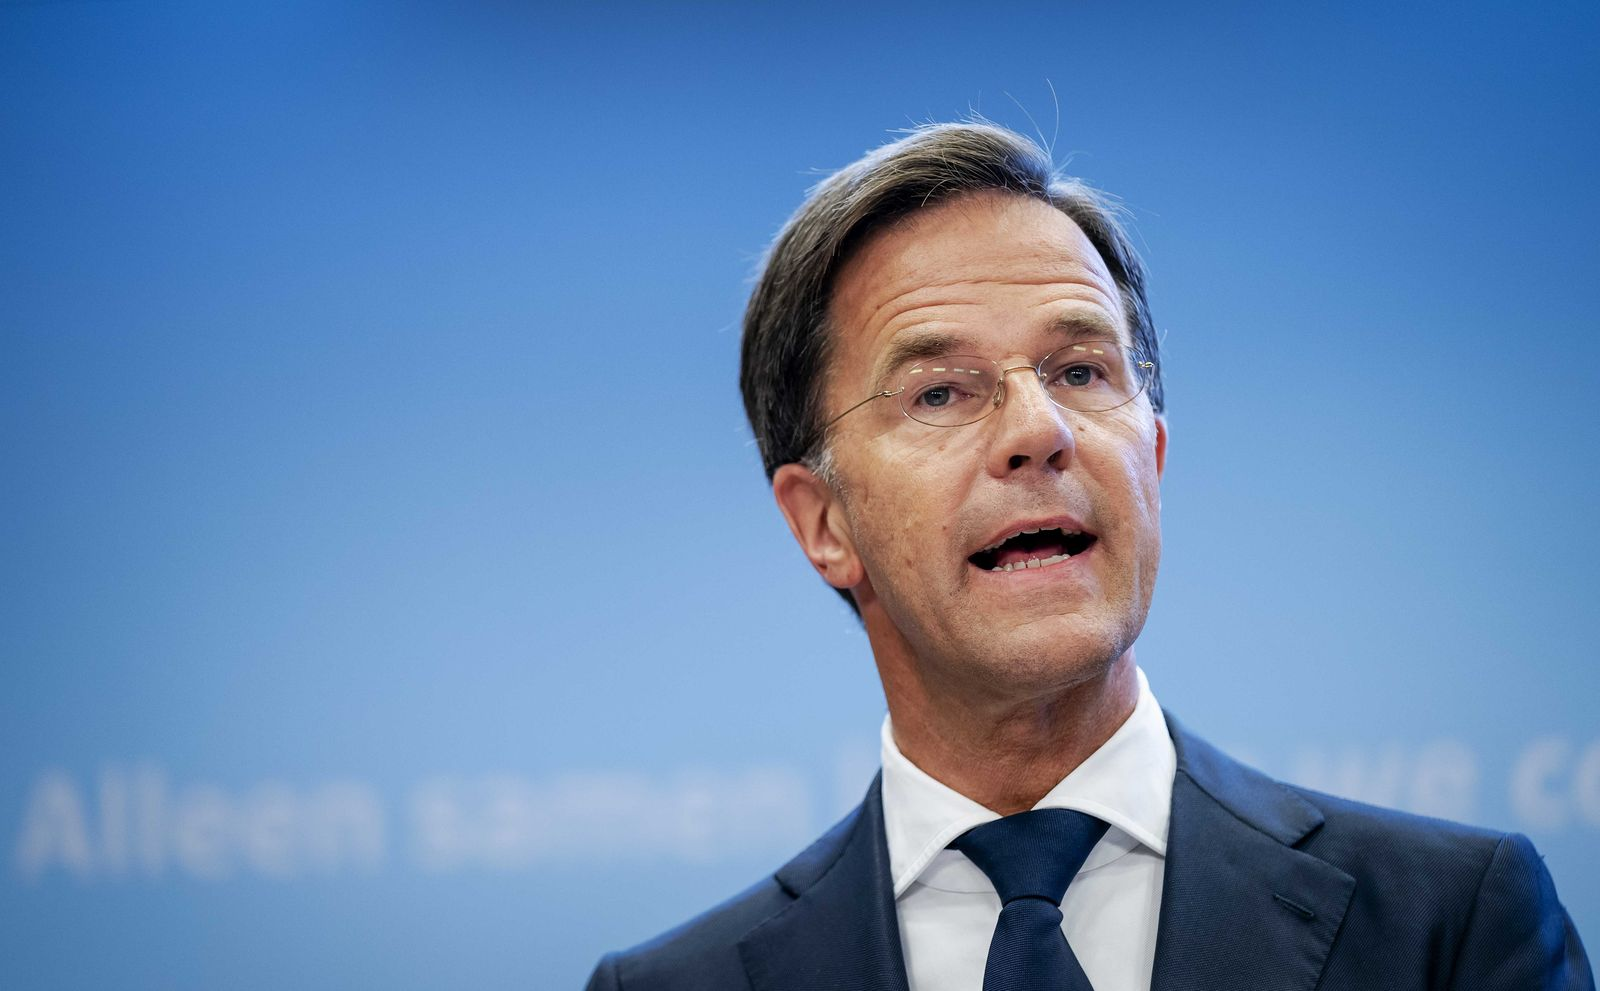 Rutte and De Jonge give press conference about coronavirus, The Hague, Netherlands - 18 Aug 2020